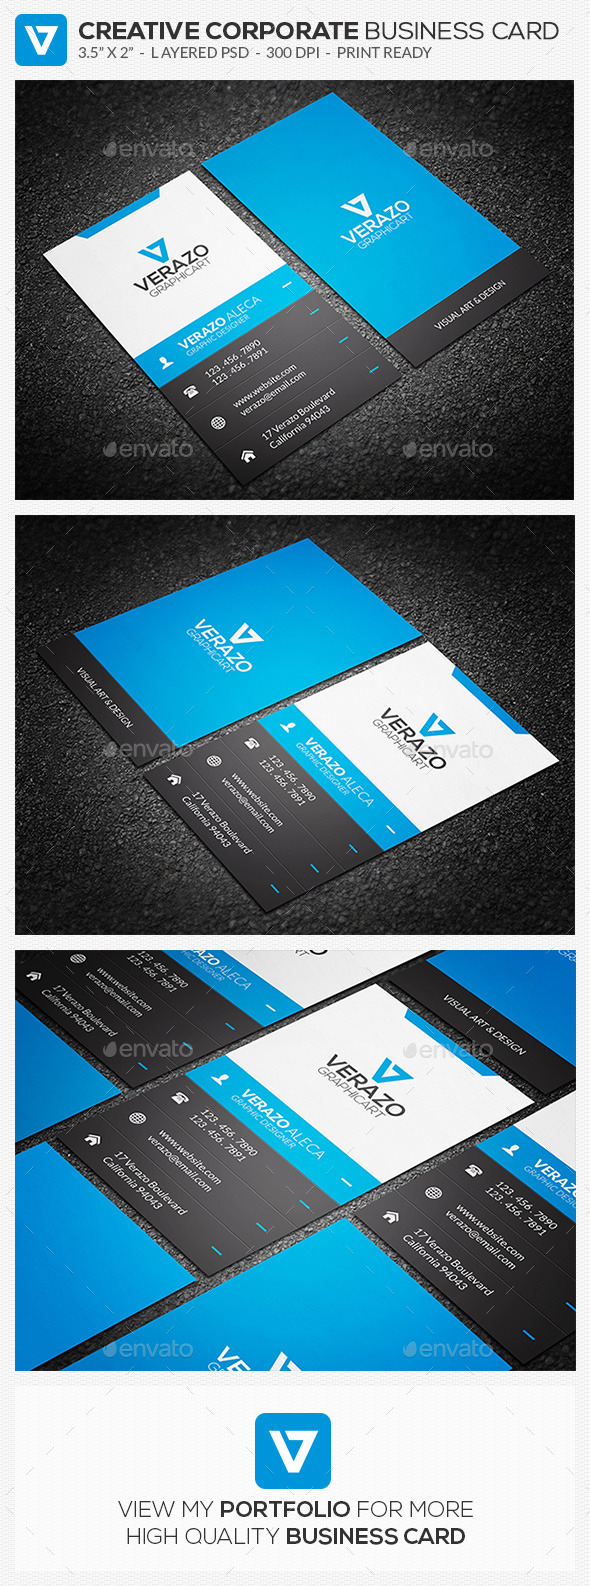 GraphicRiver Creative Corporate Business Card 61 8950838